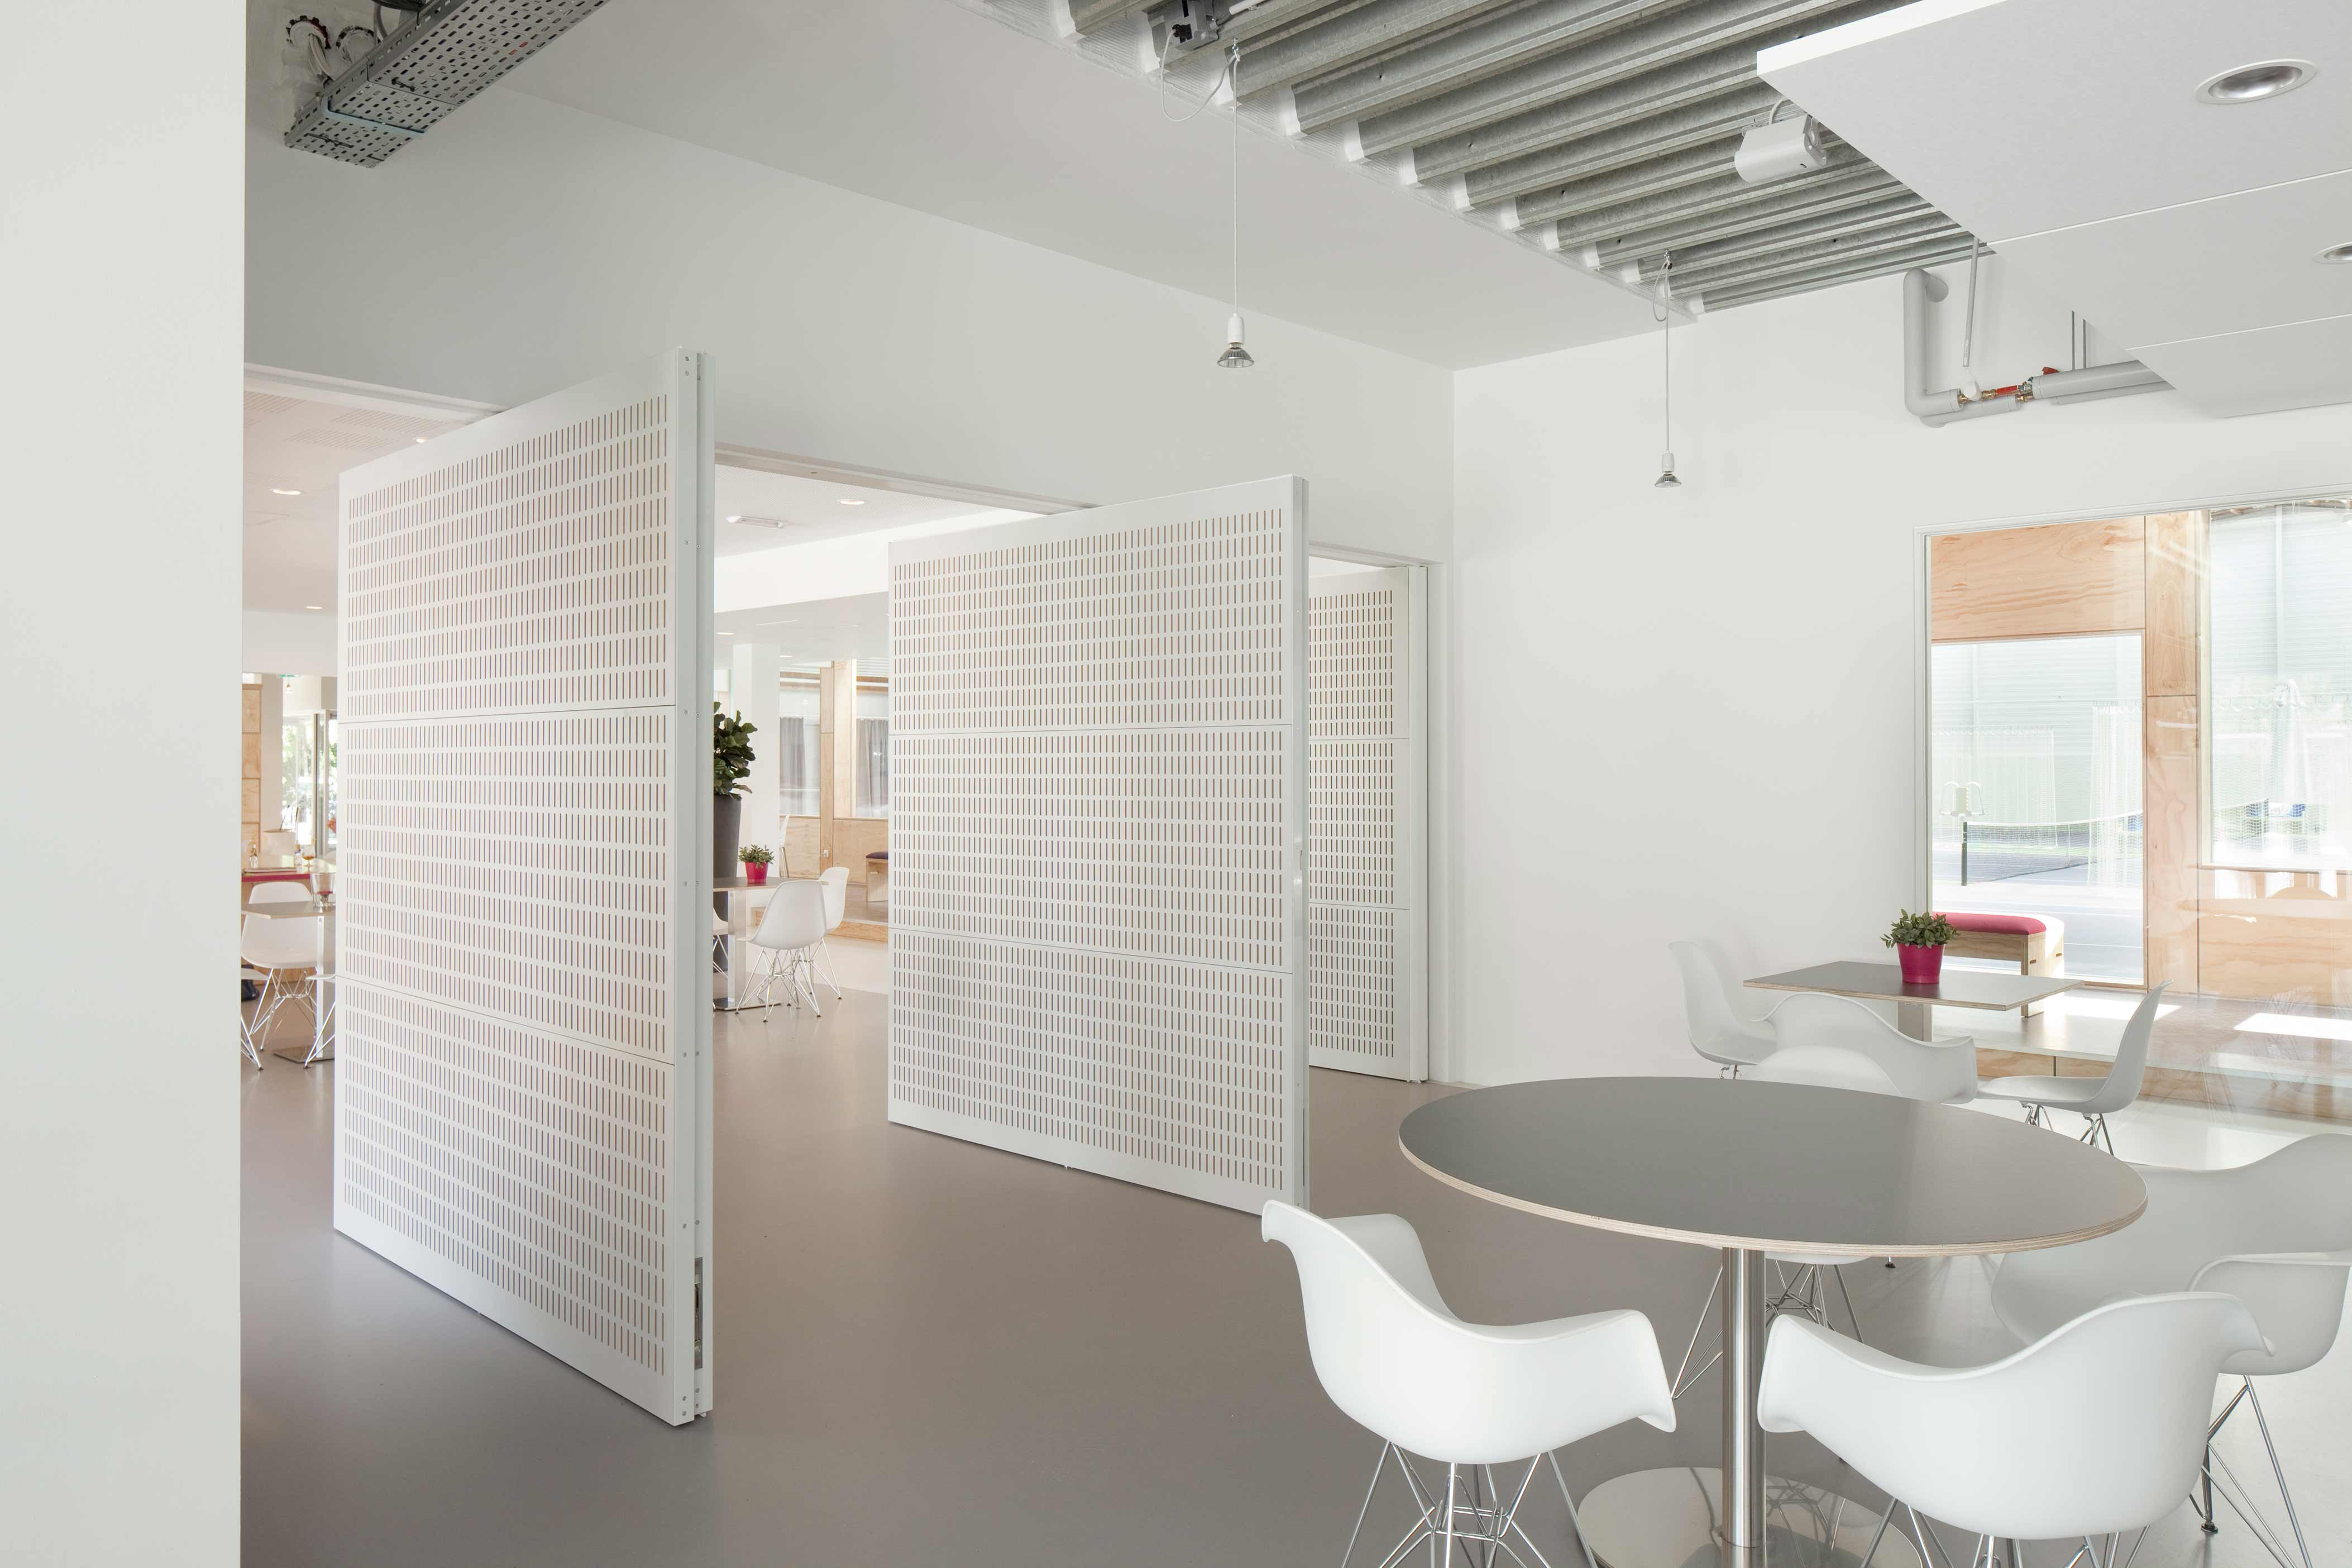 Pivoting wall designed by Royal Haskoning Architecten, with FritsJurgens System 3 pivot hinges